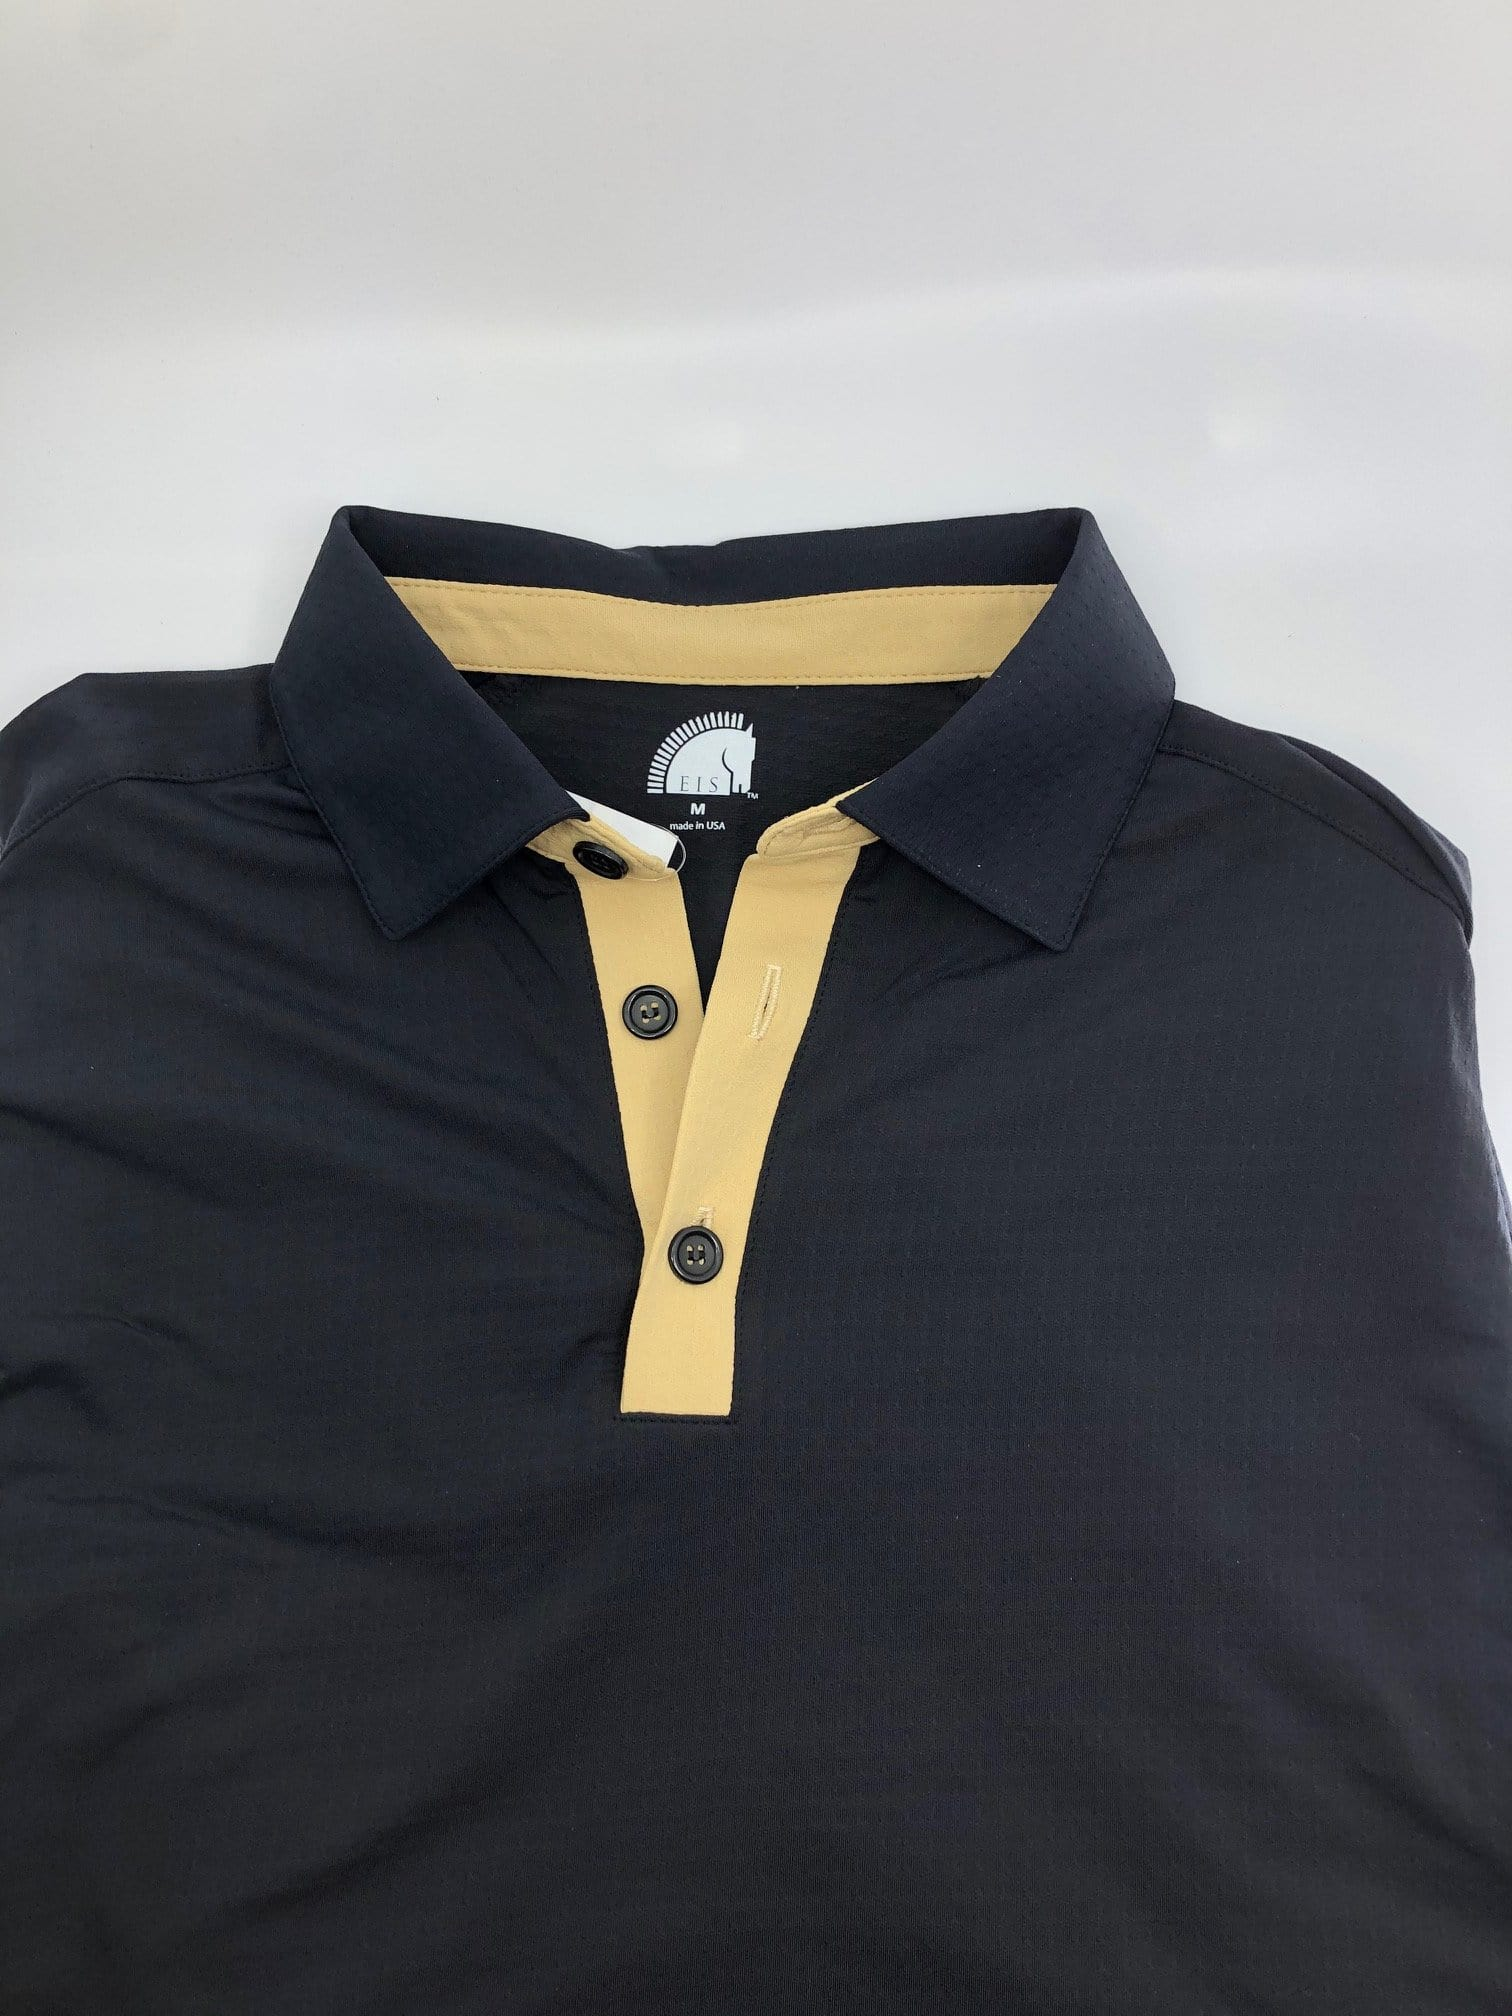 EIS Men's Shirts M/XS Men's Black Cashmere EIS Short Sleeve equestrian team apparel online tack store mobile tack store custom farm apparel custom show stable clothing equestrian lifestyle horse show clothing riding clothes horses equestrian tack store